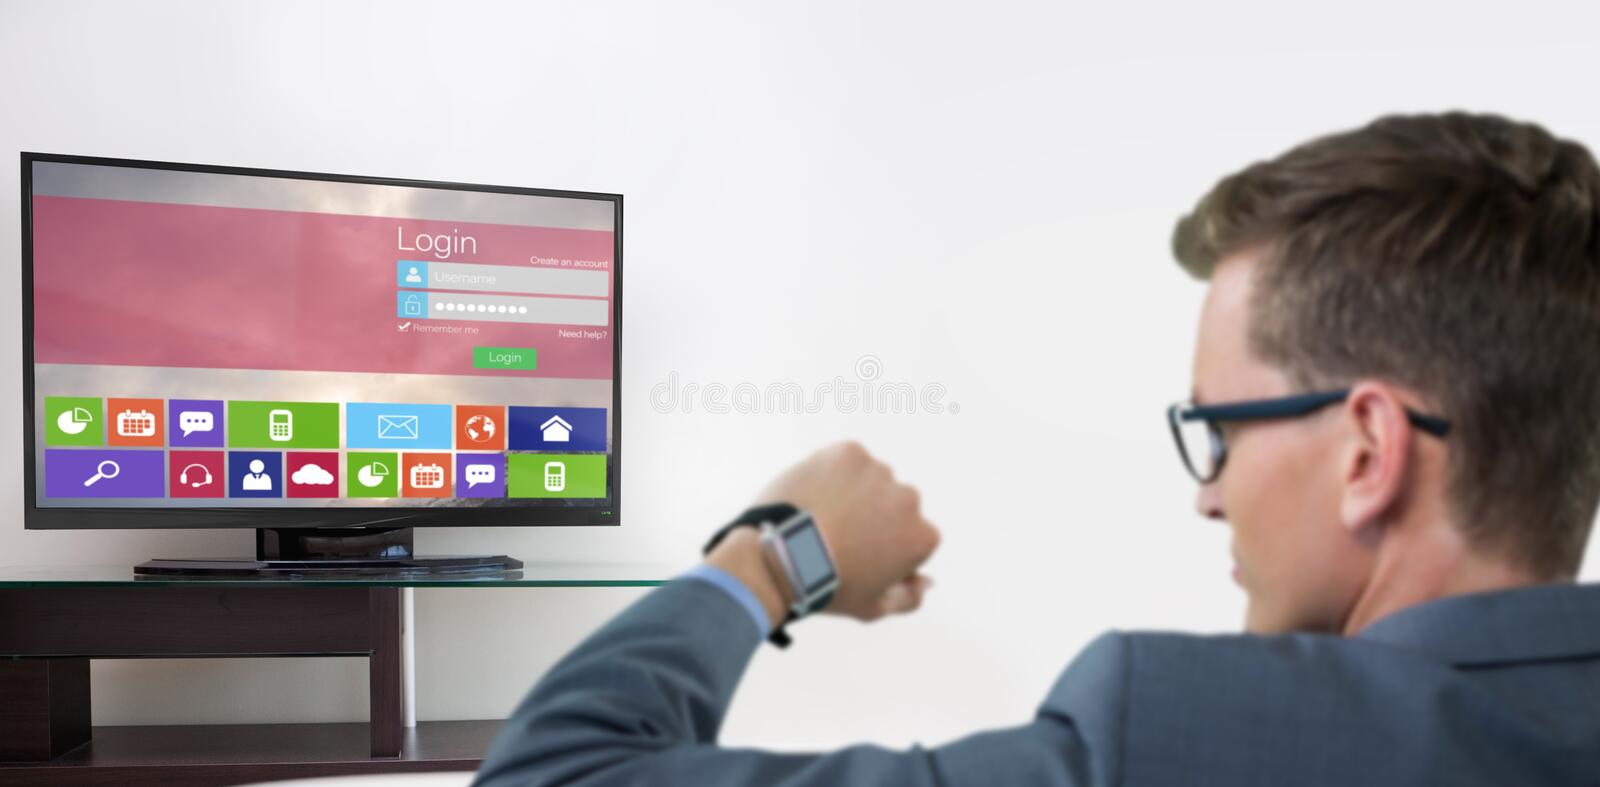 Composite image of rear view of businessman checking his smart watch. Rear view of businessman checking his smart watch against various computer icons with stock image